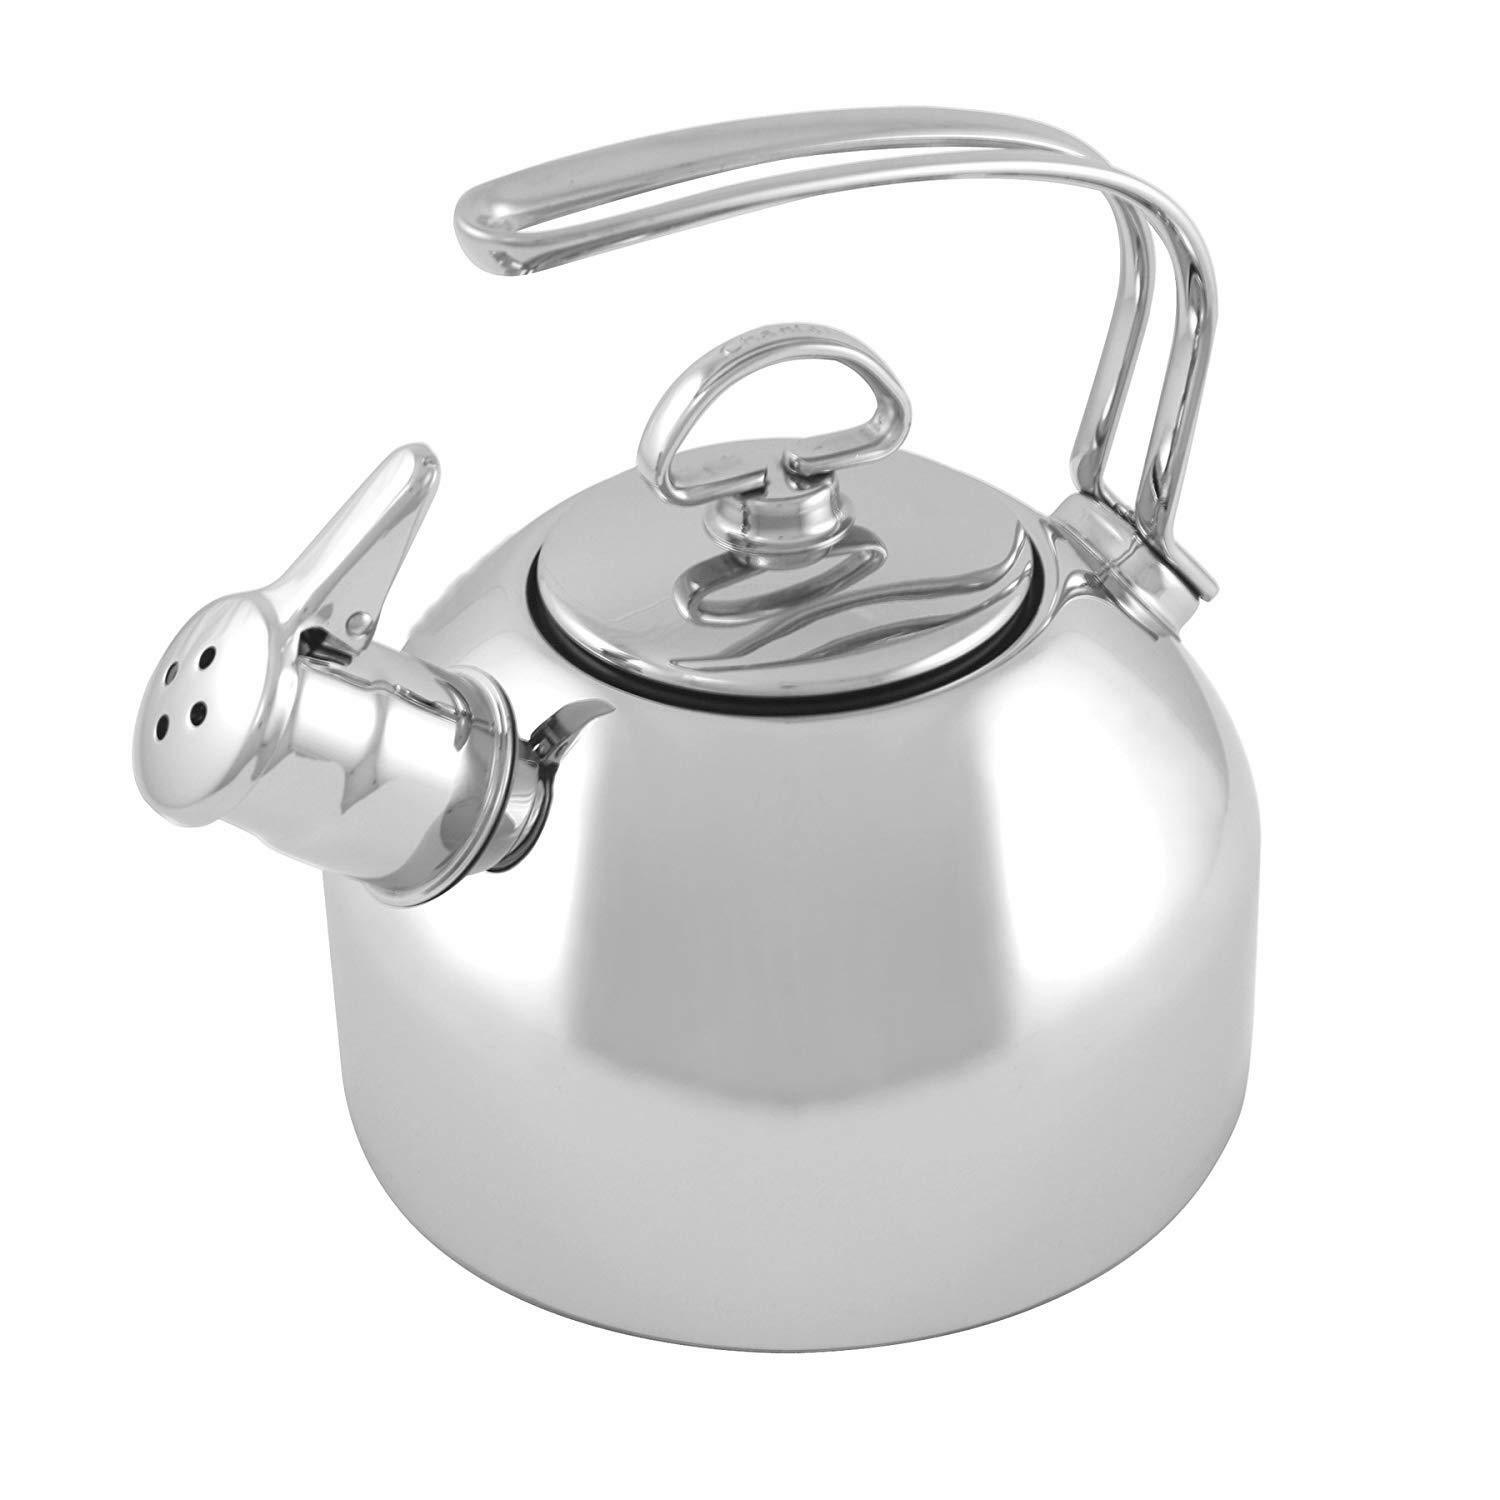 Chantal 1.8 Qt Classic Stainless Steel Stovetop Tea Kettle Teakettle New